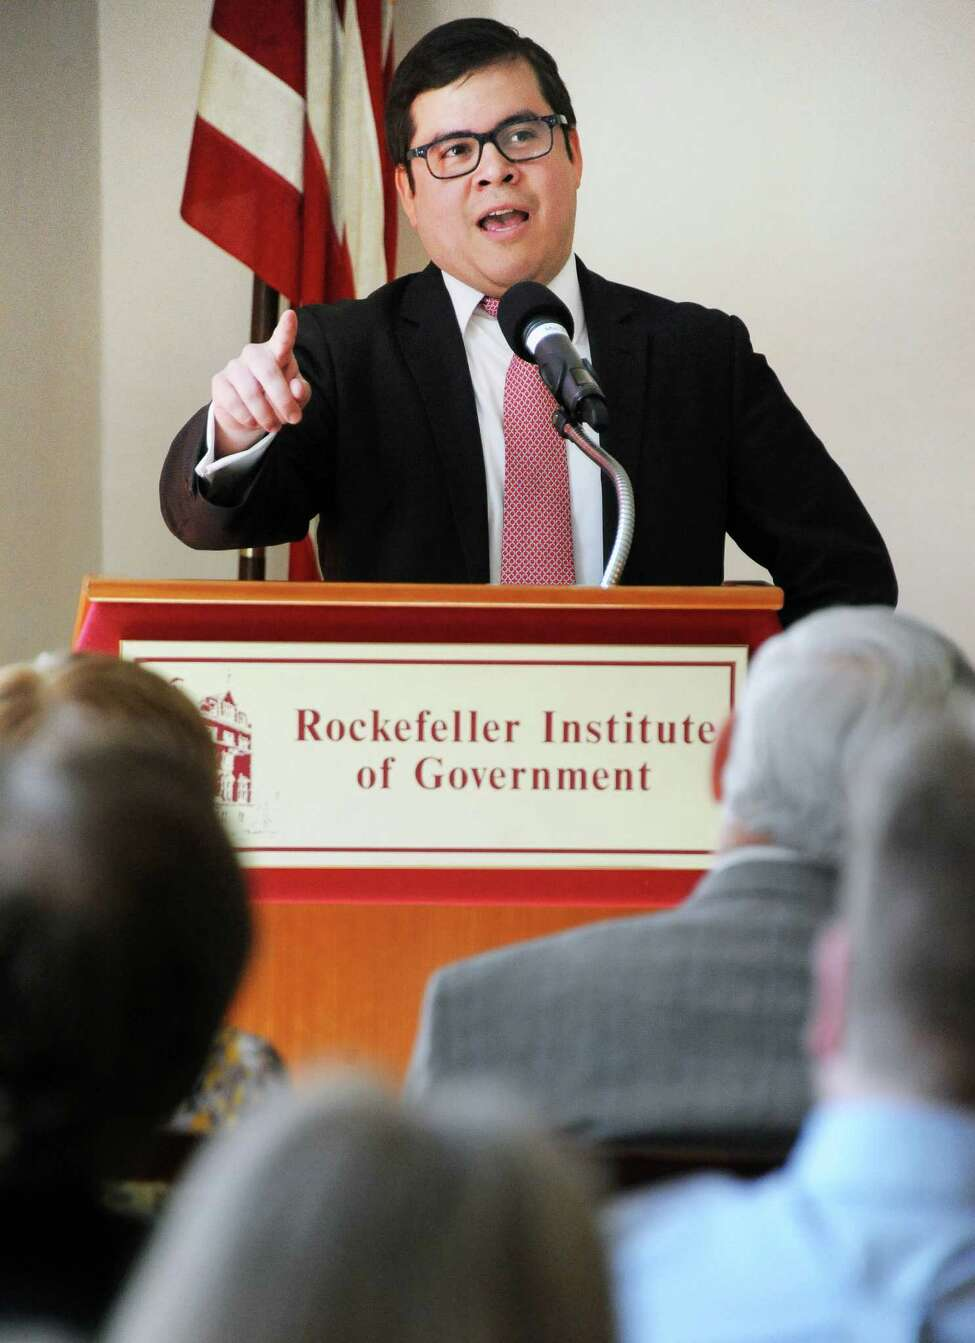 Jorge Montalvo of the NYS Office for New Citizens speaks during a panel discussion on the importance of Immigration to the New York State economy on Tuesday, March 29, 2016, at the Rockefeller Institute in Albany, N.Y. (John Carl D'Annibale / Times Union)